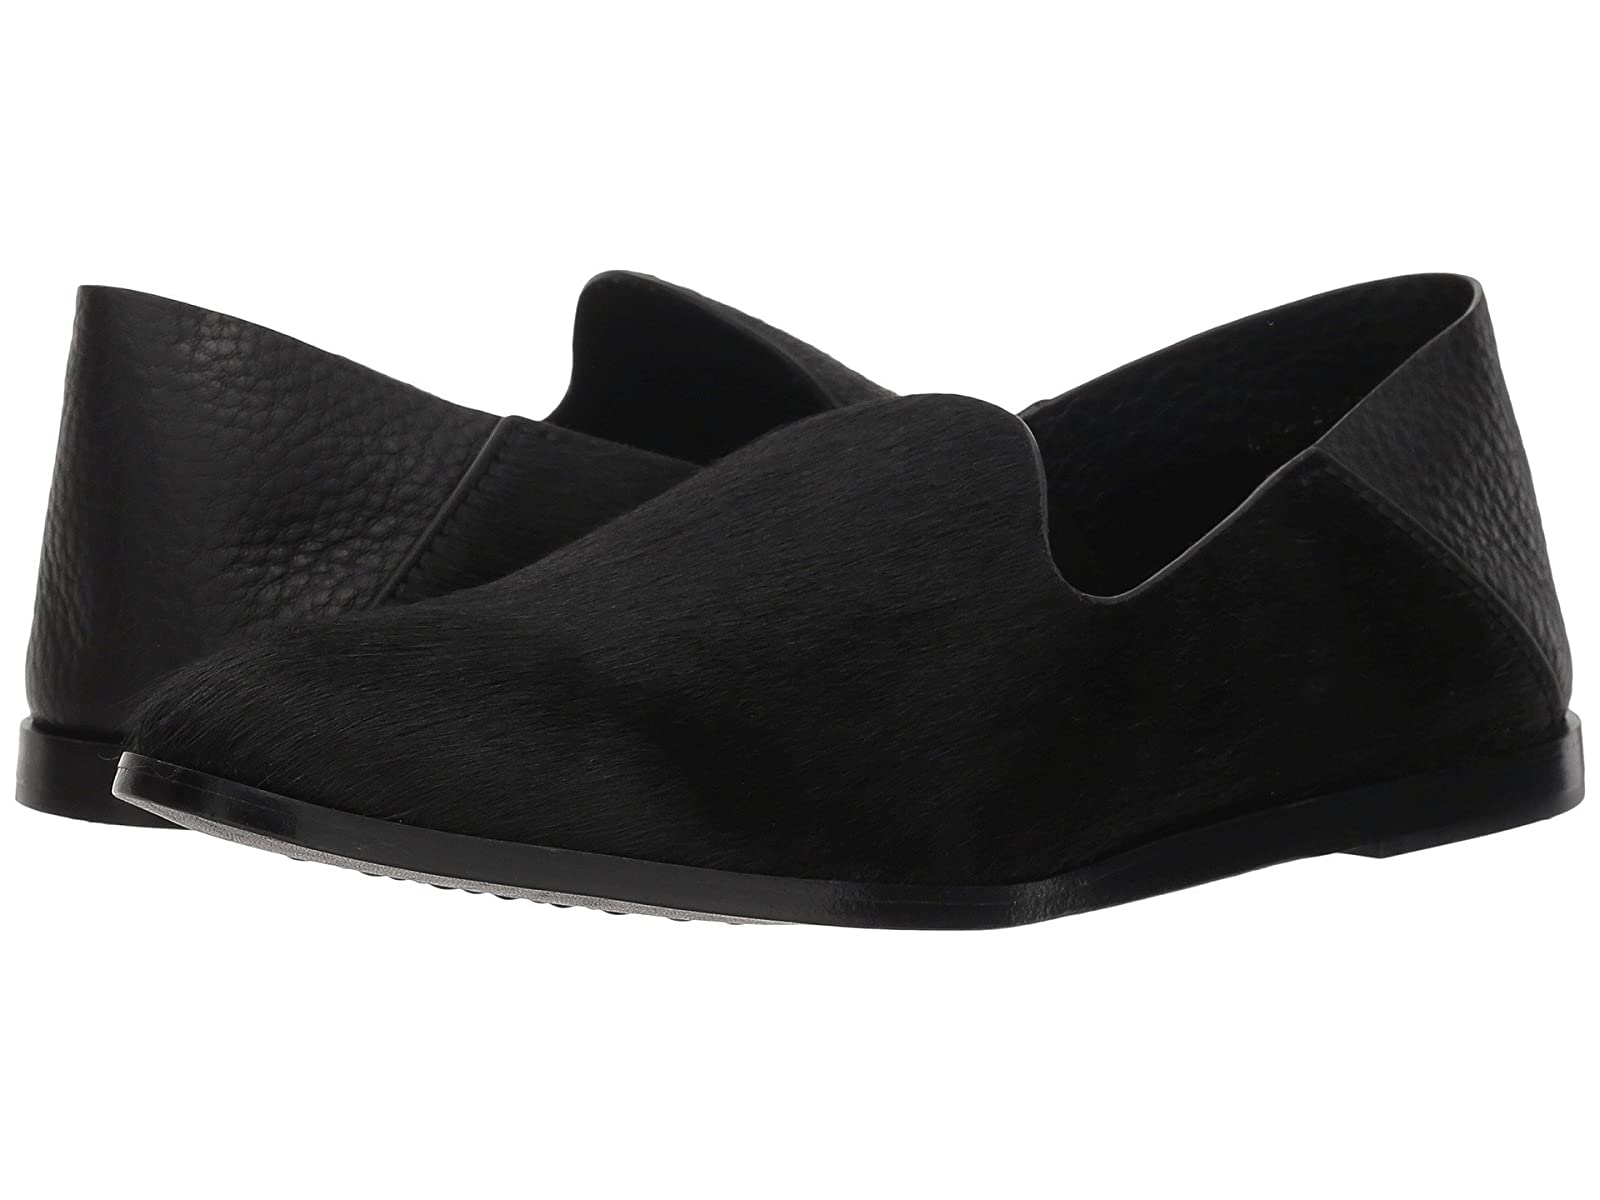 Pedro Garcia YaelAtmospheric grades have affordable shoes